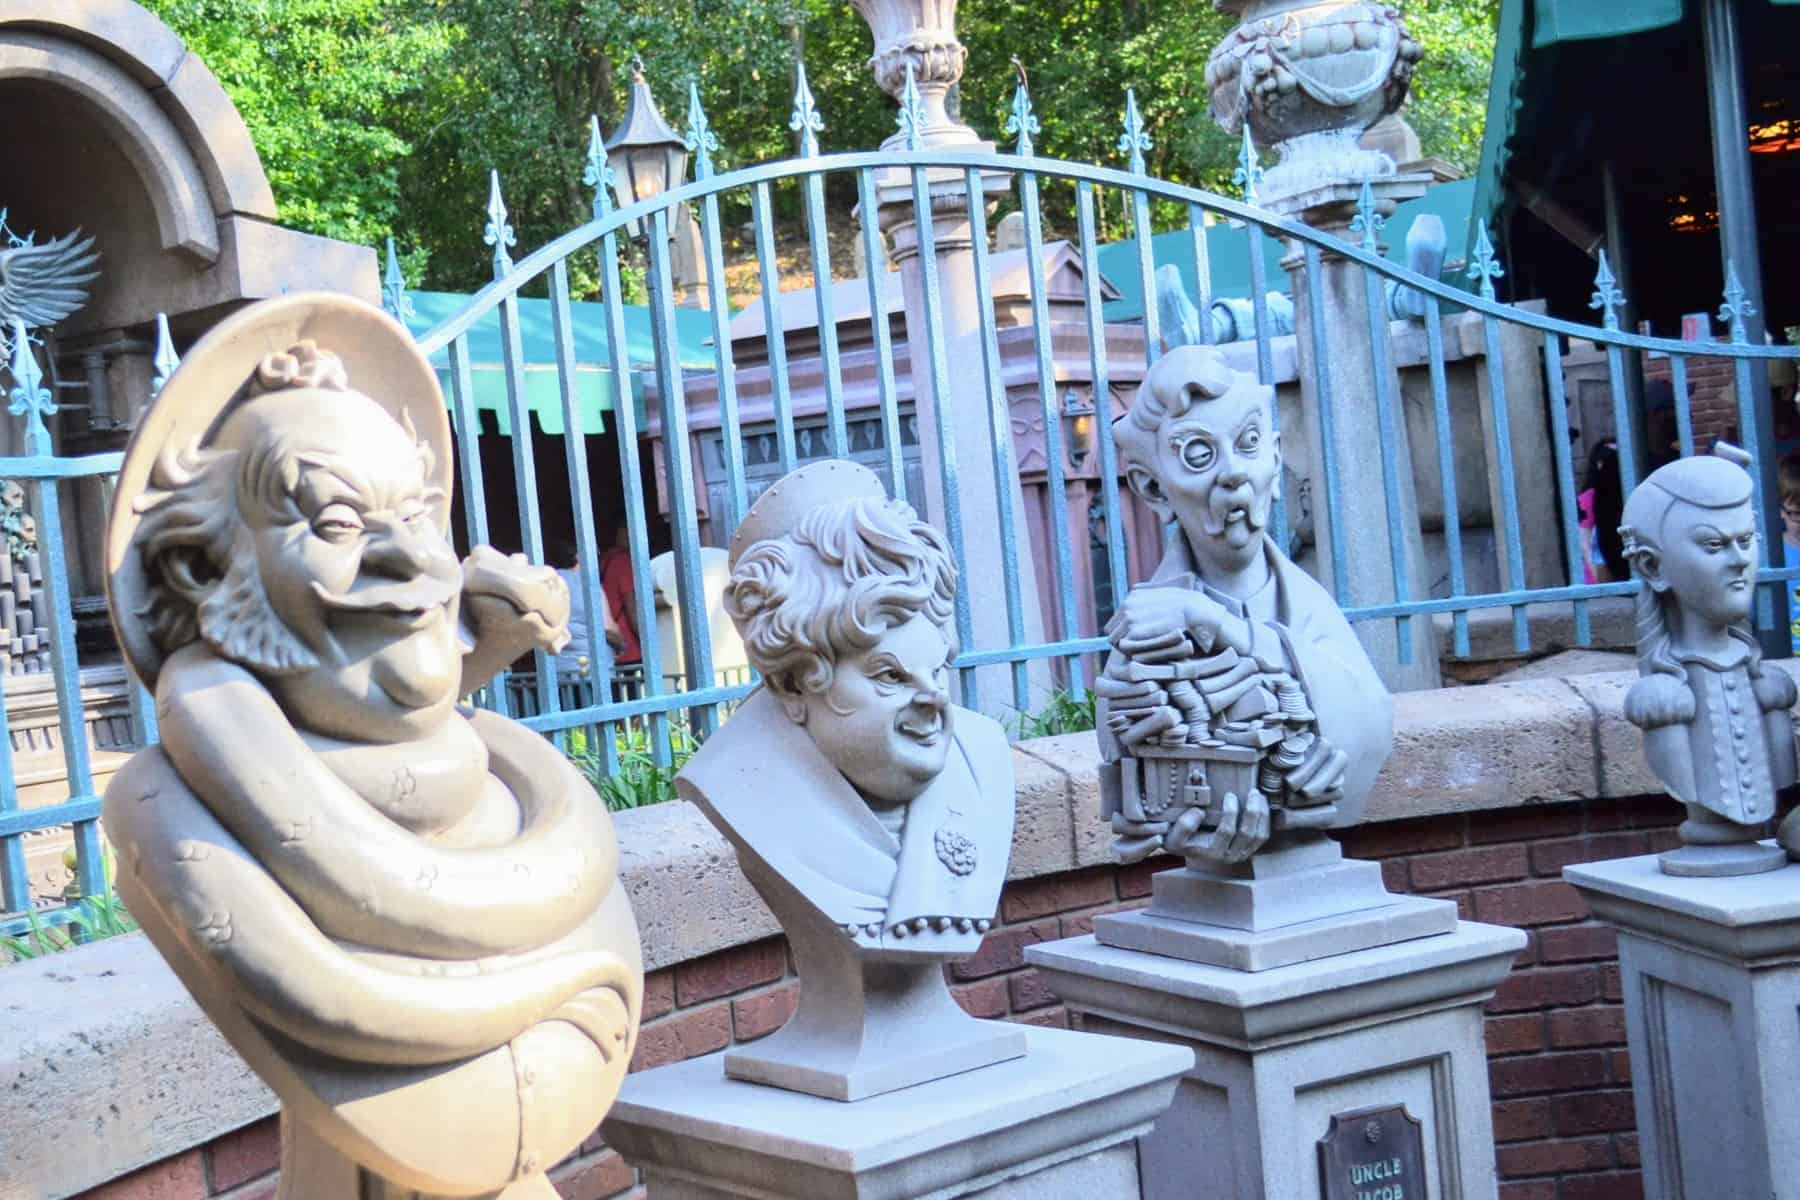 Things that might scare little ones at Disney World